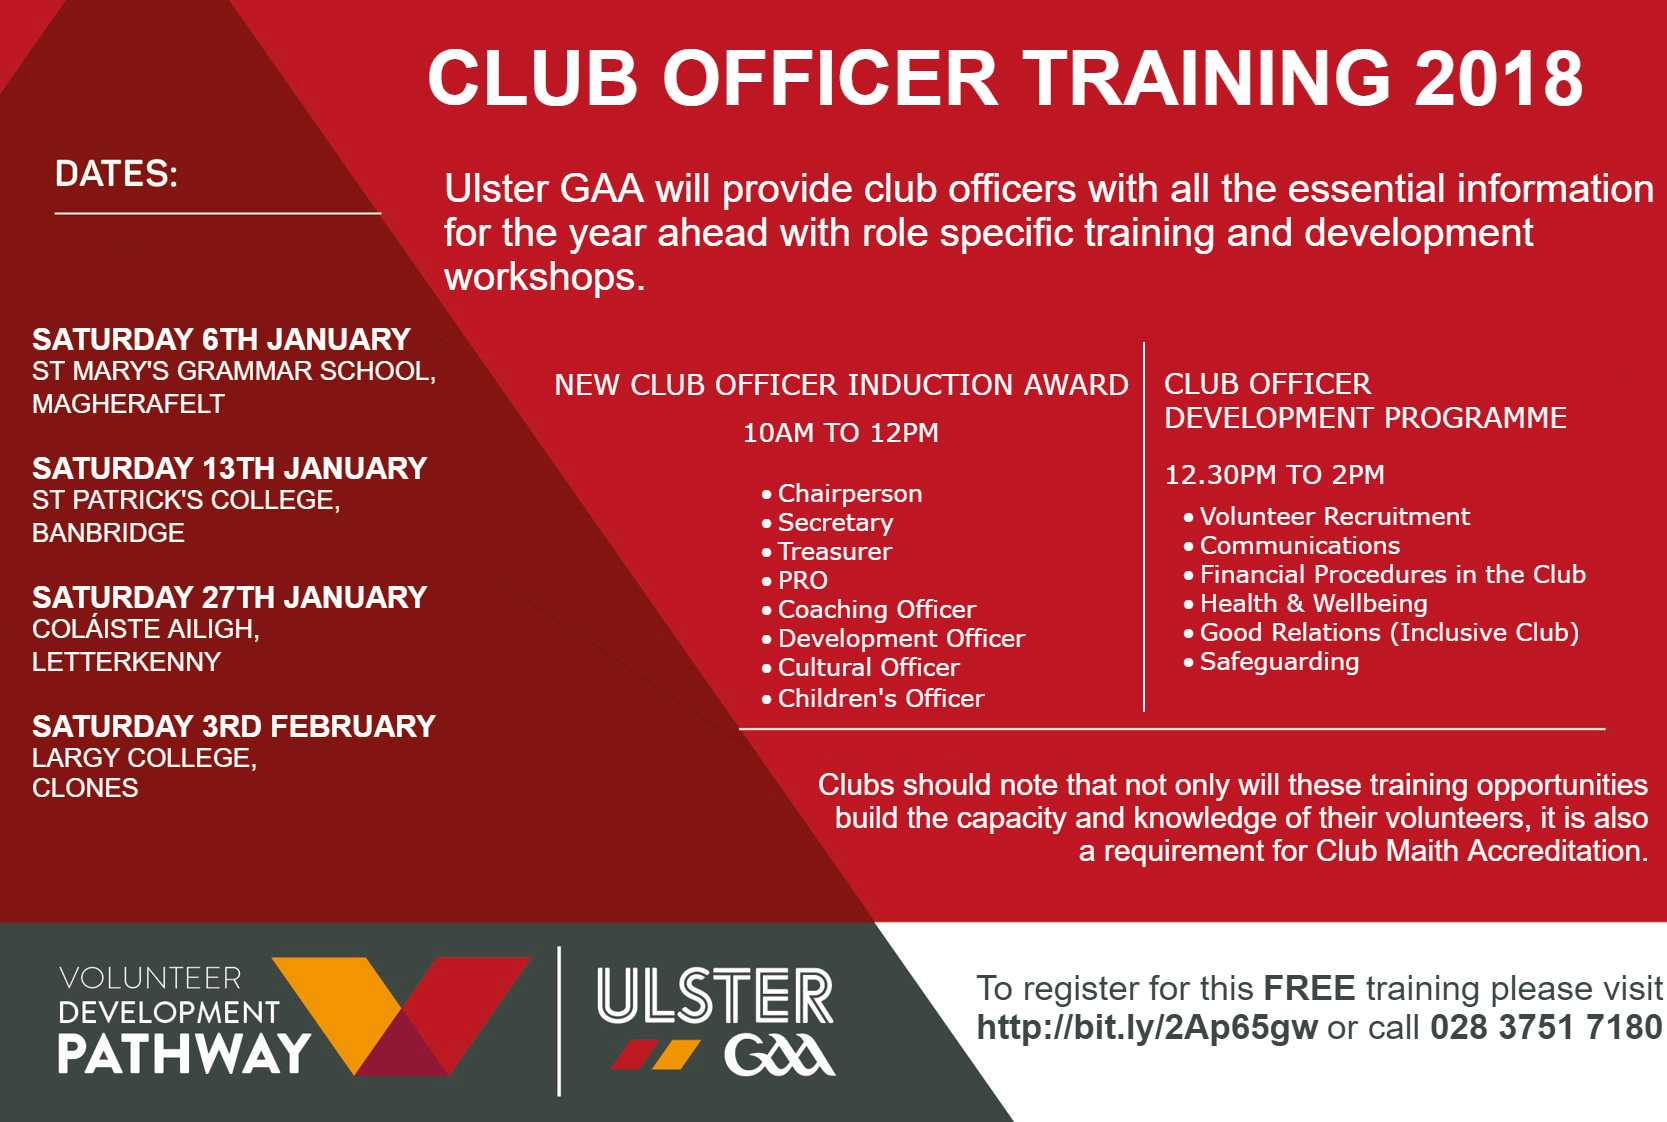 Ulster GAA Club Officer Training 2018